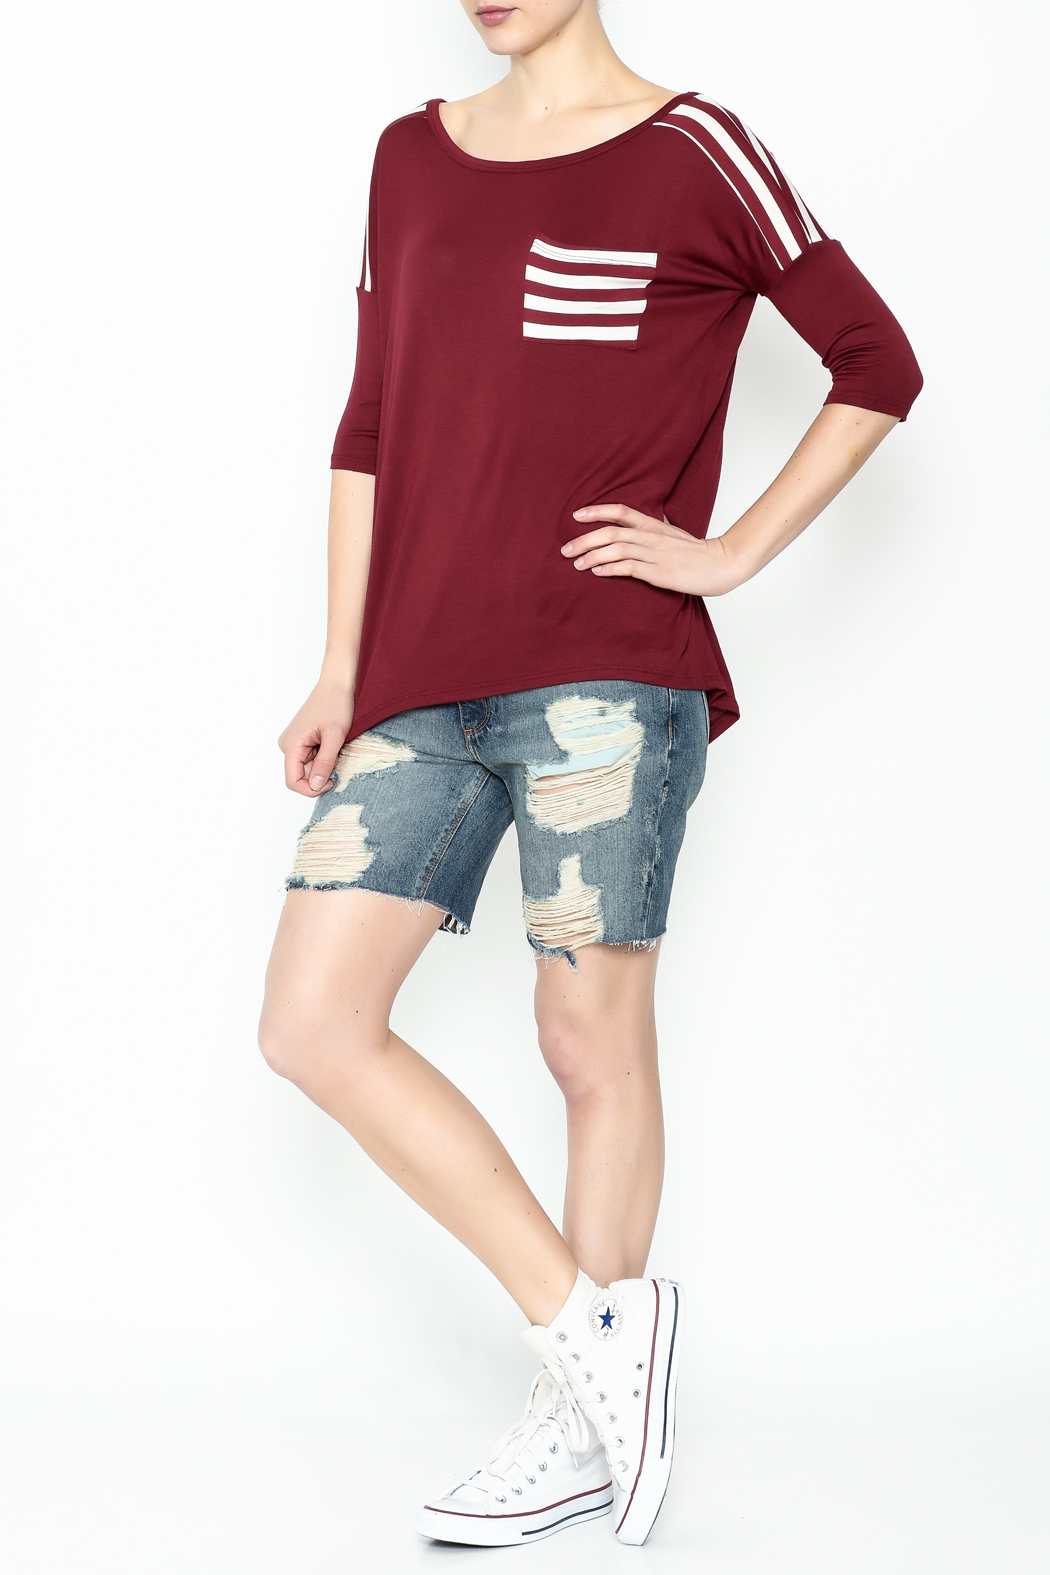 Daisy's Fashions Stripe Pocket Tee - Side Cropped Image